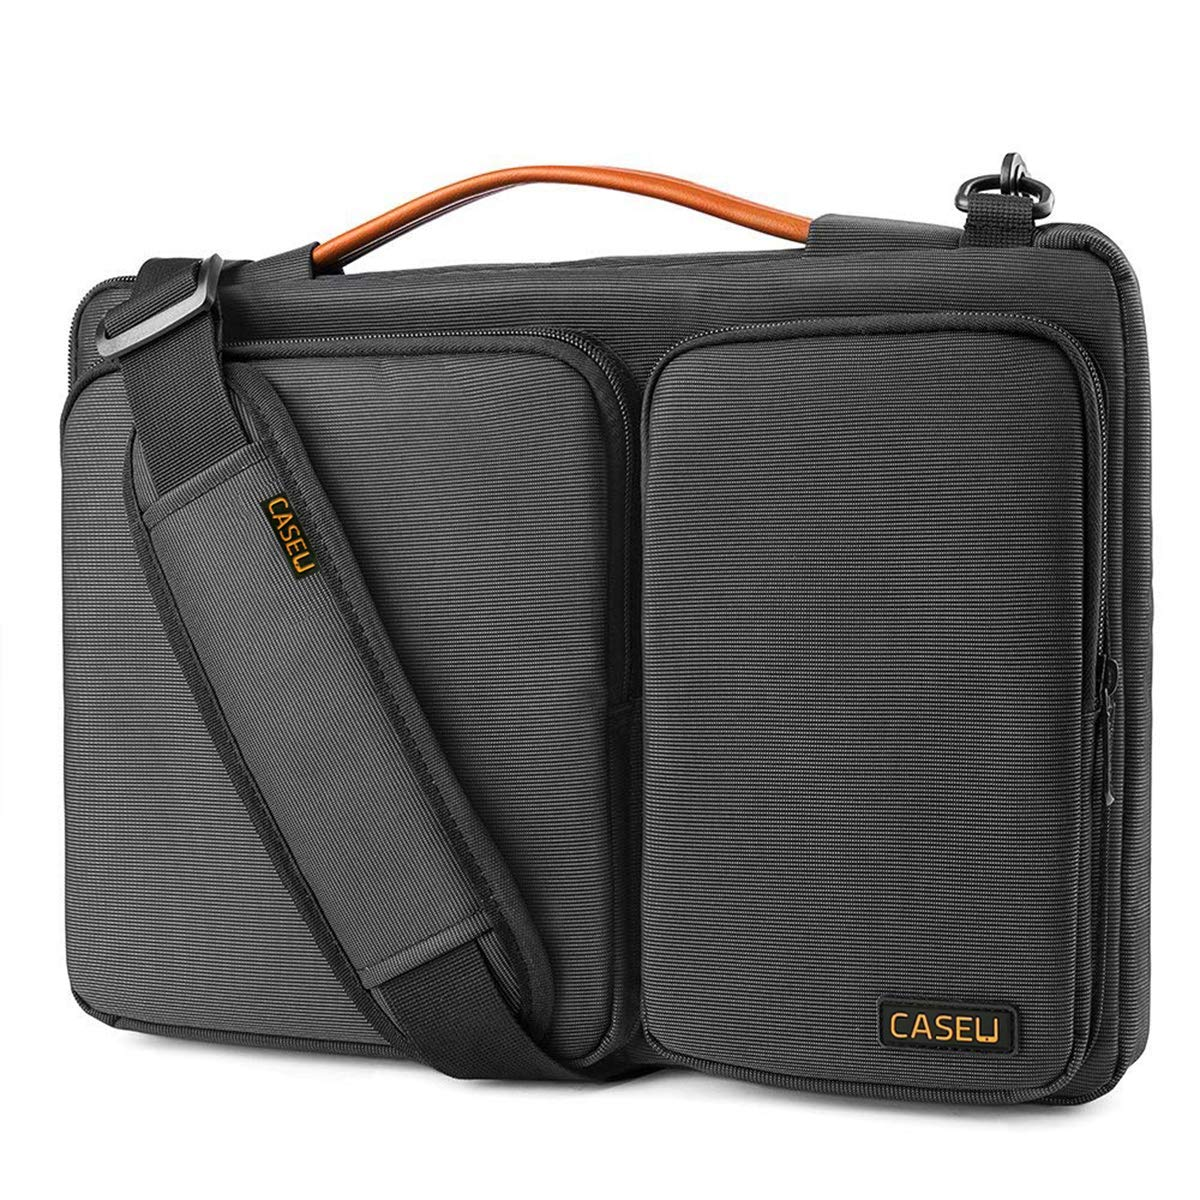 CASE U Polyester 15.6 inch 360 Degree Protective Laptop Bag (Black) product image